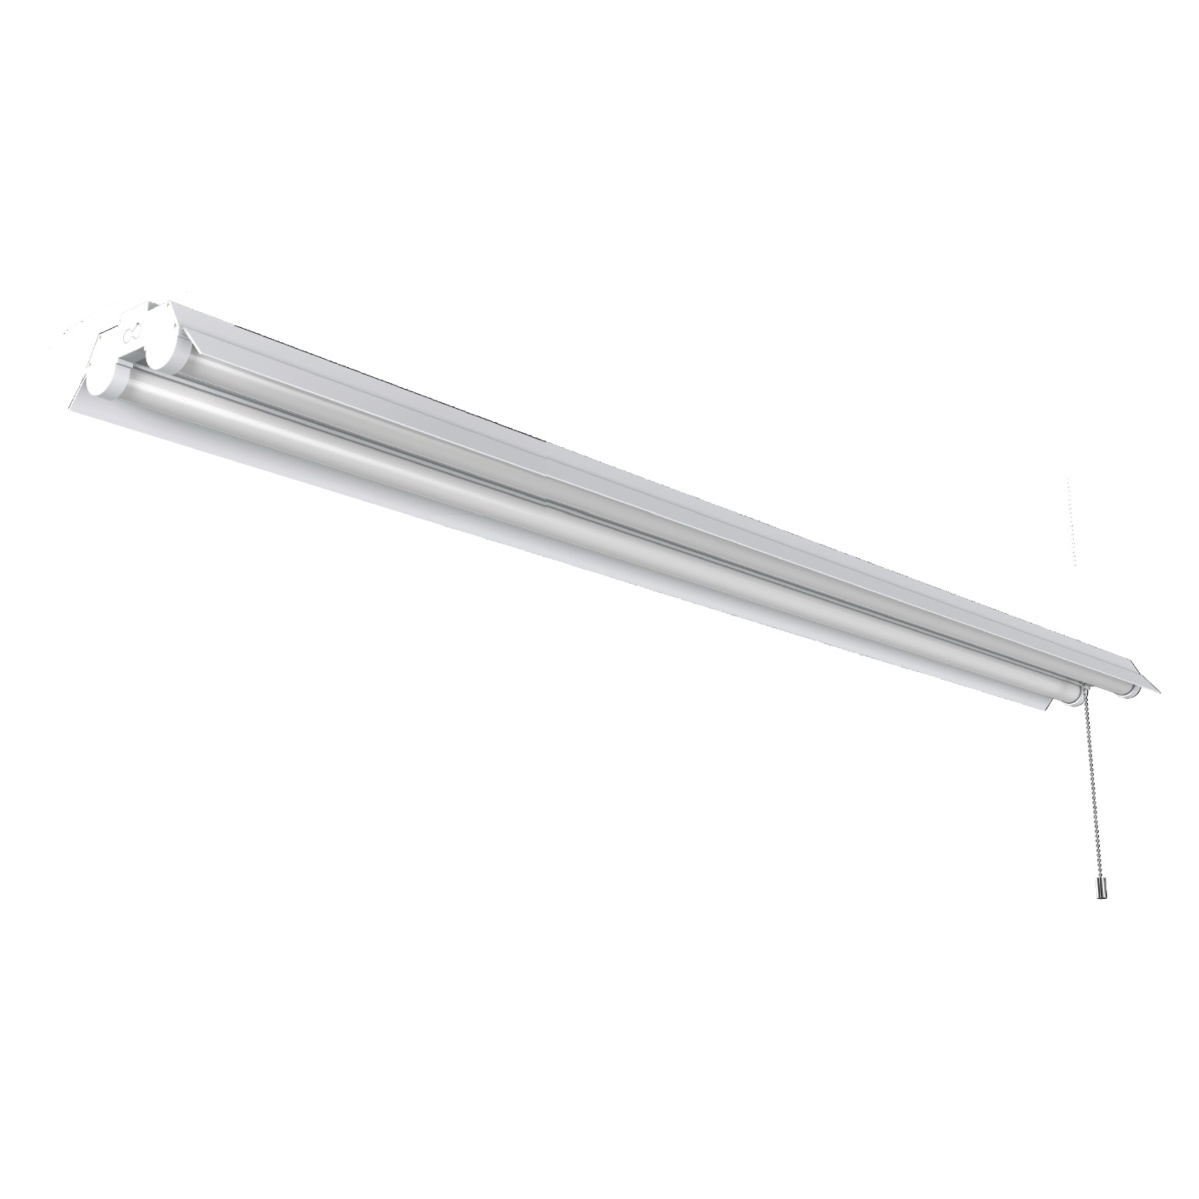 Led Shoplight 40w 4000k Cct 120 277v